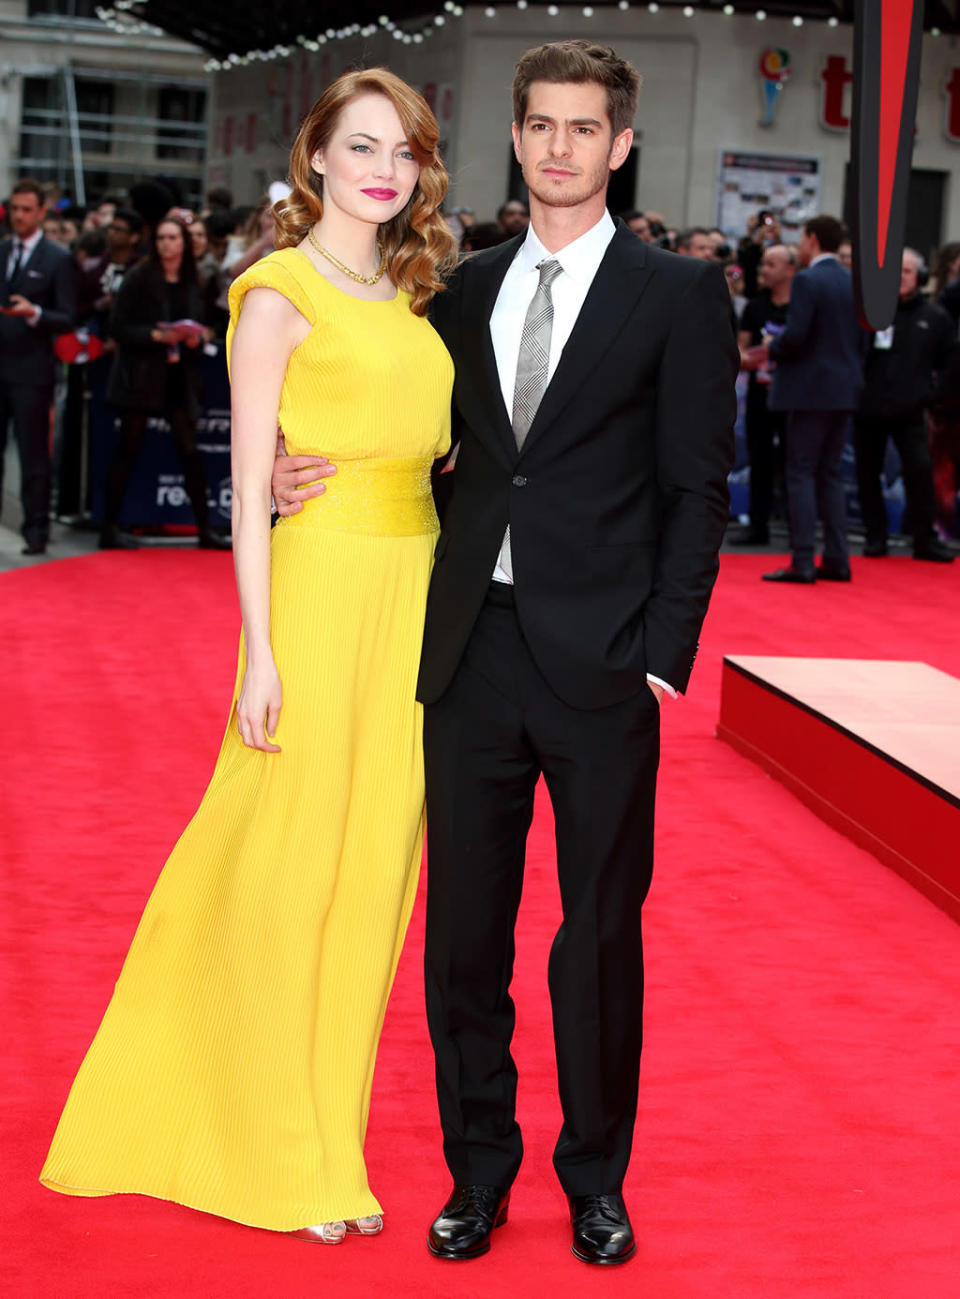 <p>Stone and Garfield, who became an item after teaming for the first installment, return for <em>The Amazing Spider-Man 2</em> in May 2014. Their four-year relationship would end less than a year later. (Photo: Mike Marsland/WireImage) </p>